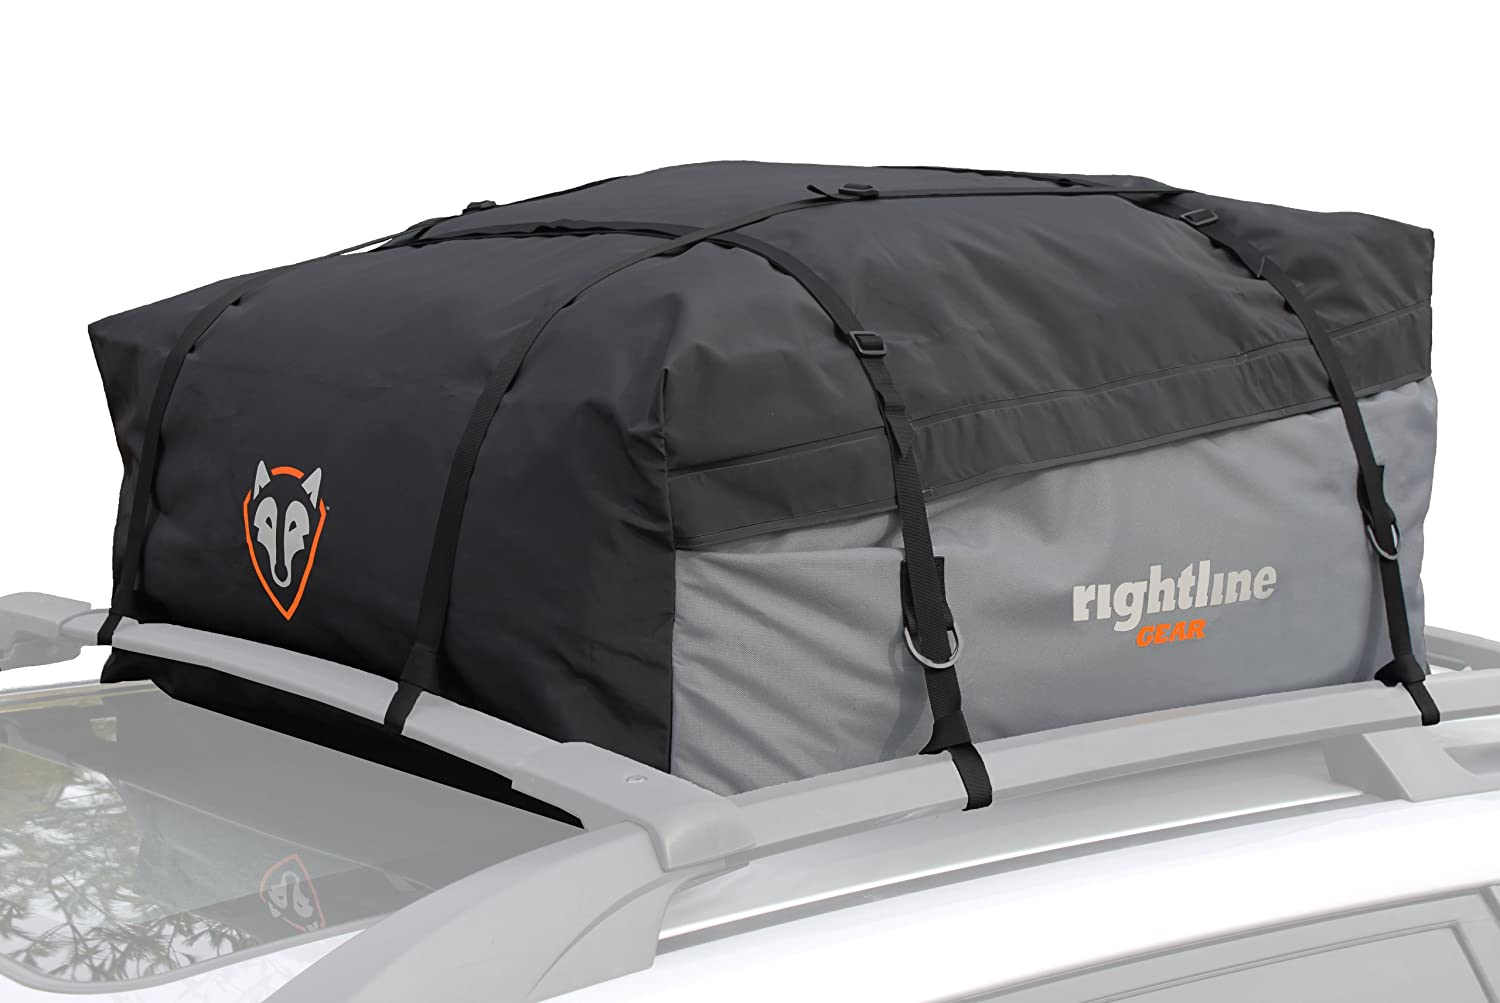 Amazon.com: Rightline Gear 100S10 Sport 1 Car Top Carrier, 12 Cu Ft,  Waterproof, Attaches With Or Without Roof Rack: Automotive